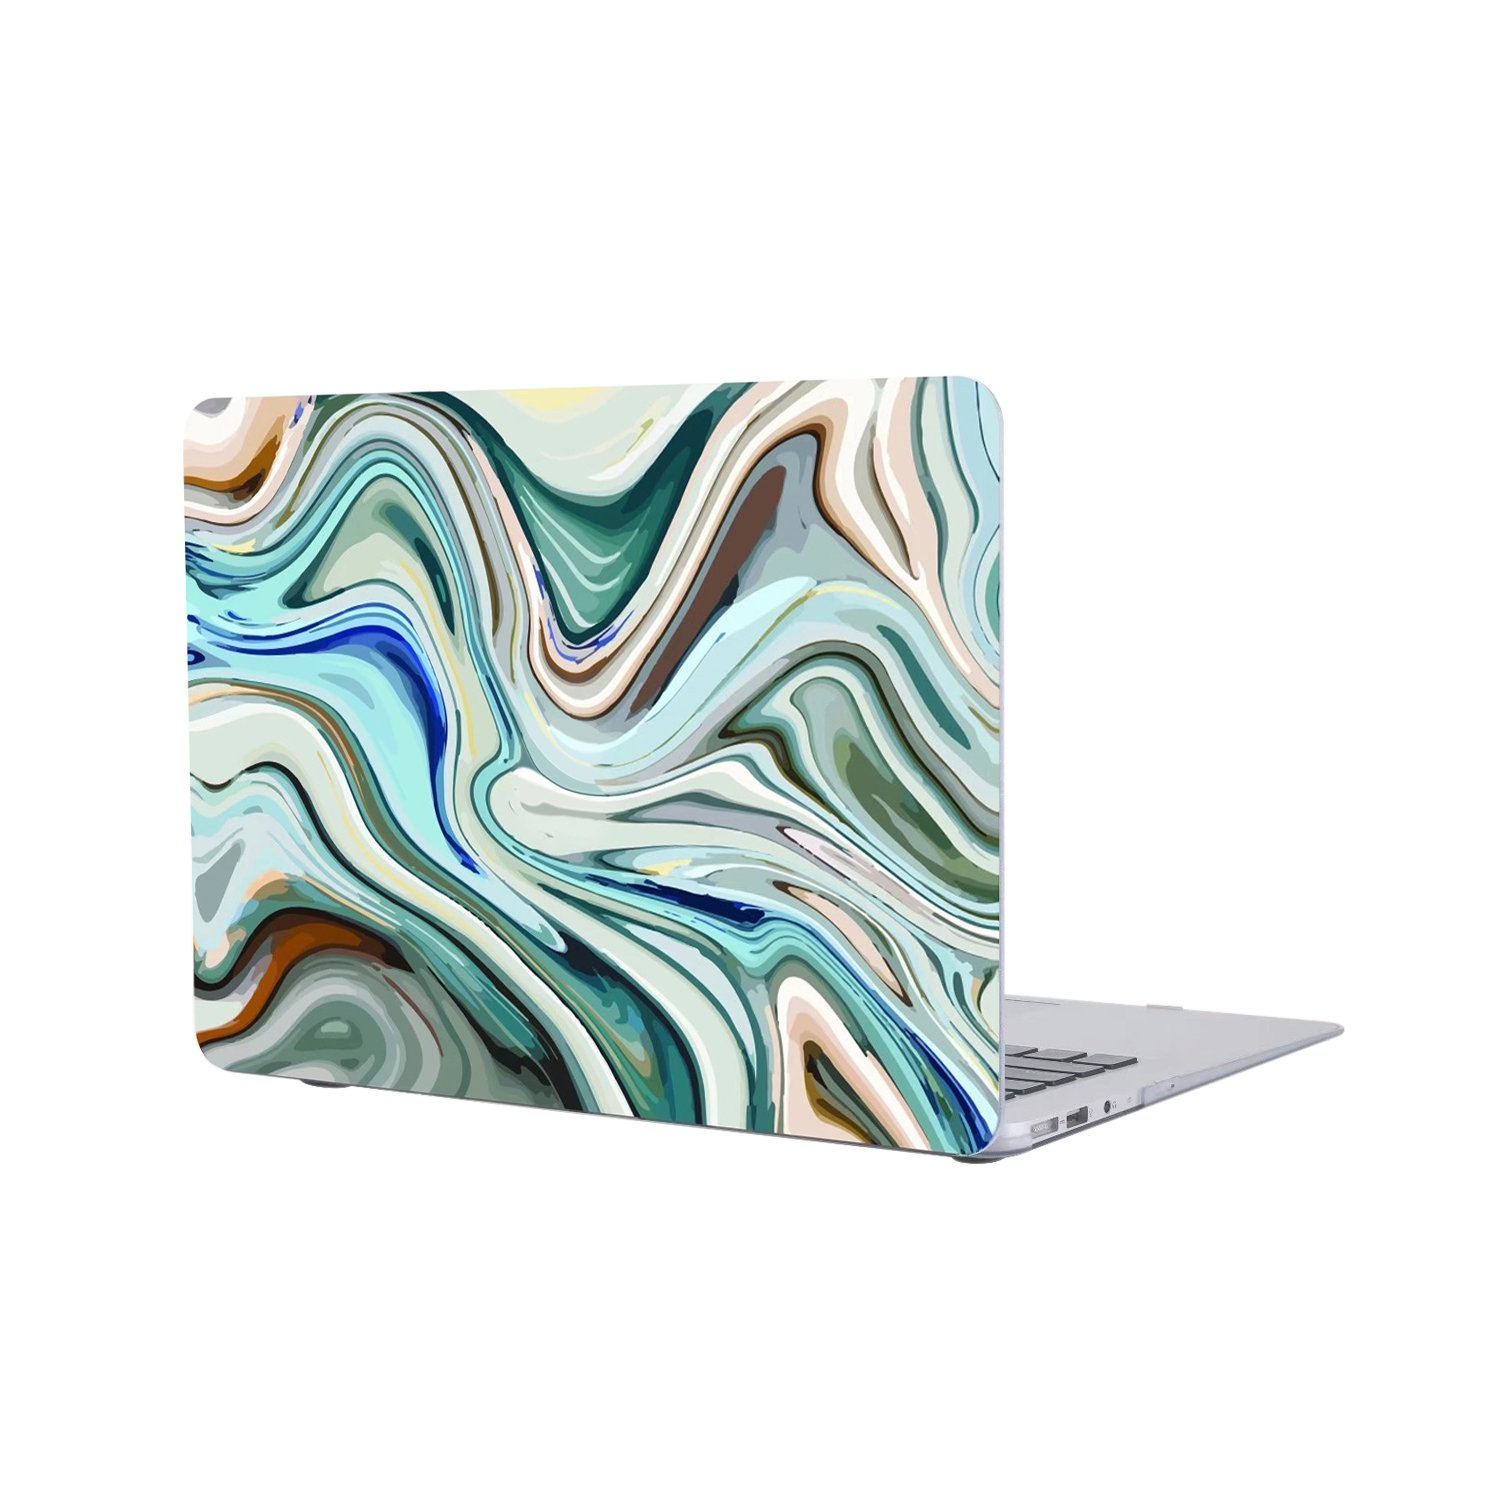 Masino Marbling Series Hard Shell Case Protective Laptop Cover for MacBook Pro 13'' with/without Touch Bar (A1706 & A1708)- 2016 Released (Mac Pro 13'' A1706/A1708, Marbling- Multi Blue)